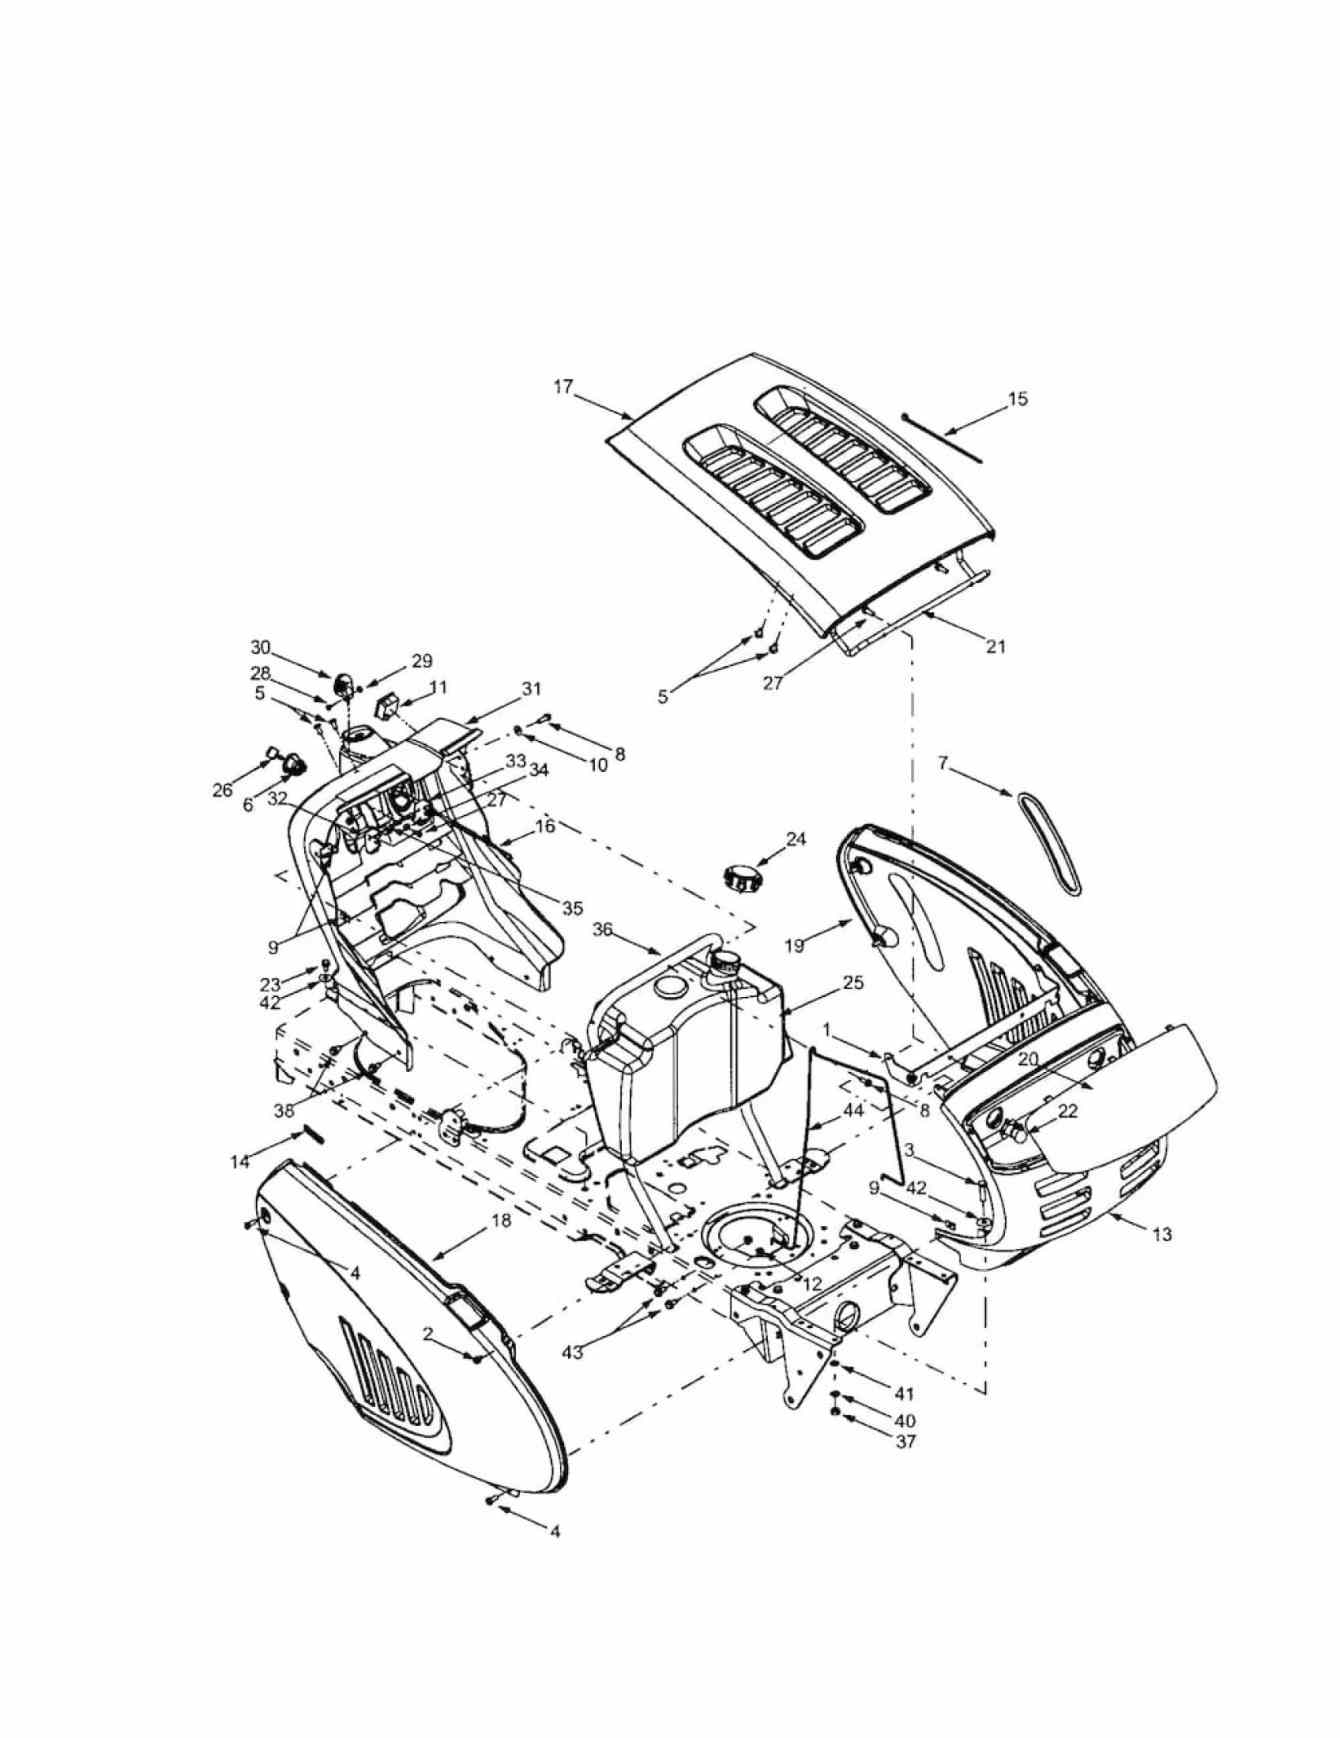 Troy Bilt Riding Lawn Mower Parts Diagram | Chentodayinfo for Craftsman Self Propelled Lawn Mower Parts Diagram